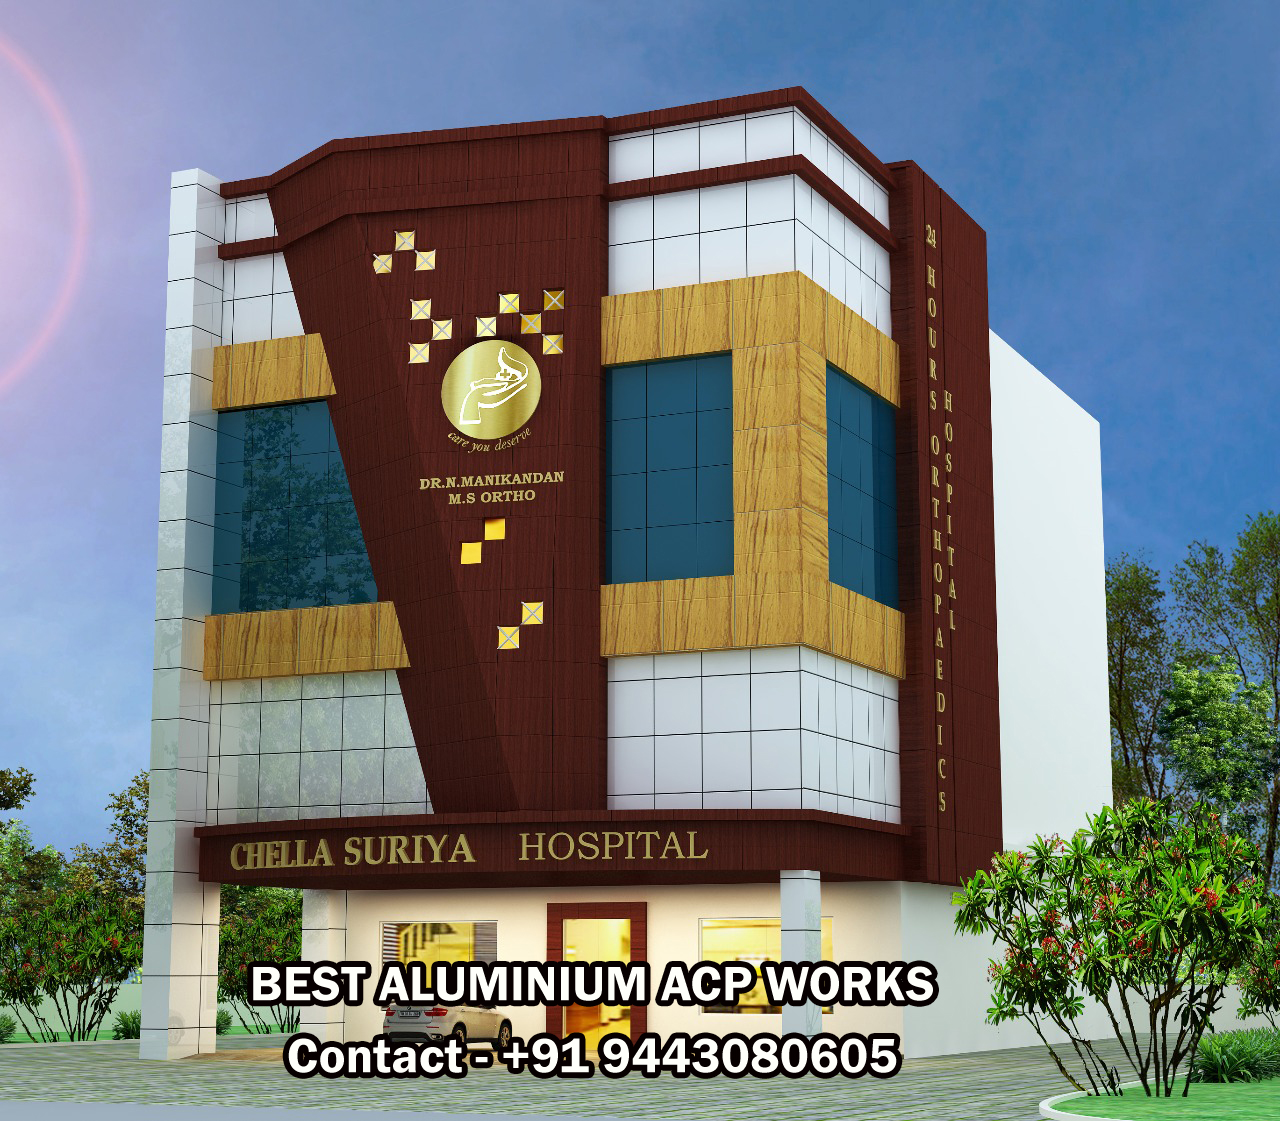 9443080605 - HPL Cladding works in tirunelveli,HPL Cladding works in tuticorin,HPL Cladding works in nagercoil,HPL Cladding works in tenkasi,HPL Cladding works in sankarankovil,HPL Cladding works in trichy,HPL Cladding works in madurai,HPL Cladding works in salem,HPL Cladding works in erode,HPL Cladding works in karur,HPL Cladding works in kanyakumari,HPL Cladding works in chennai